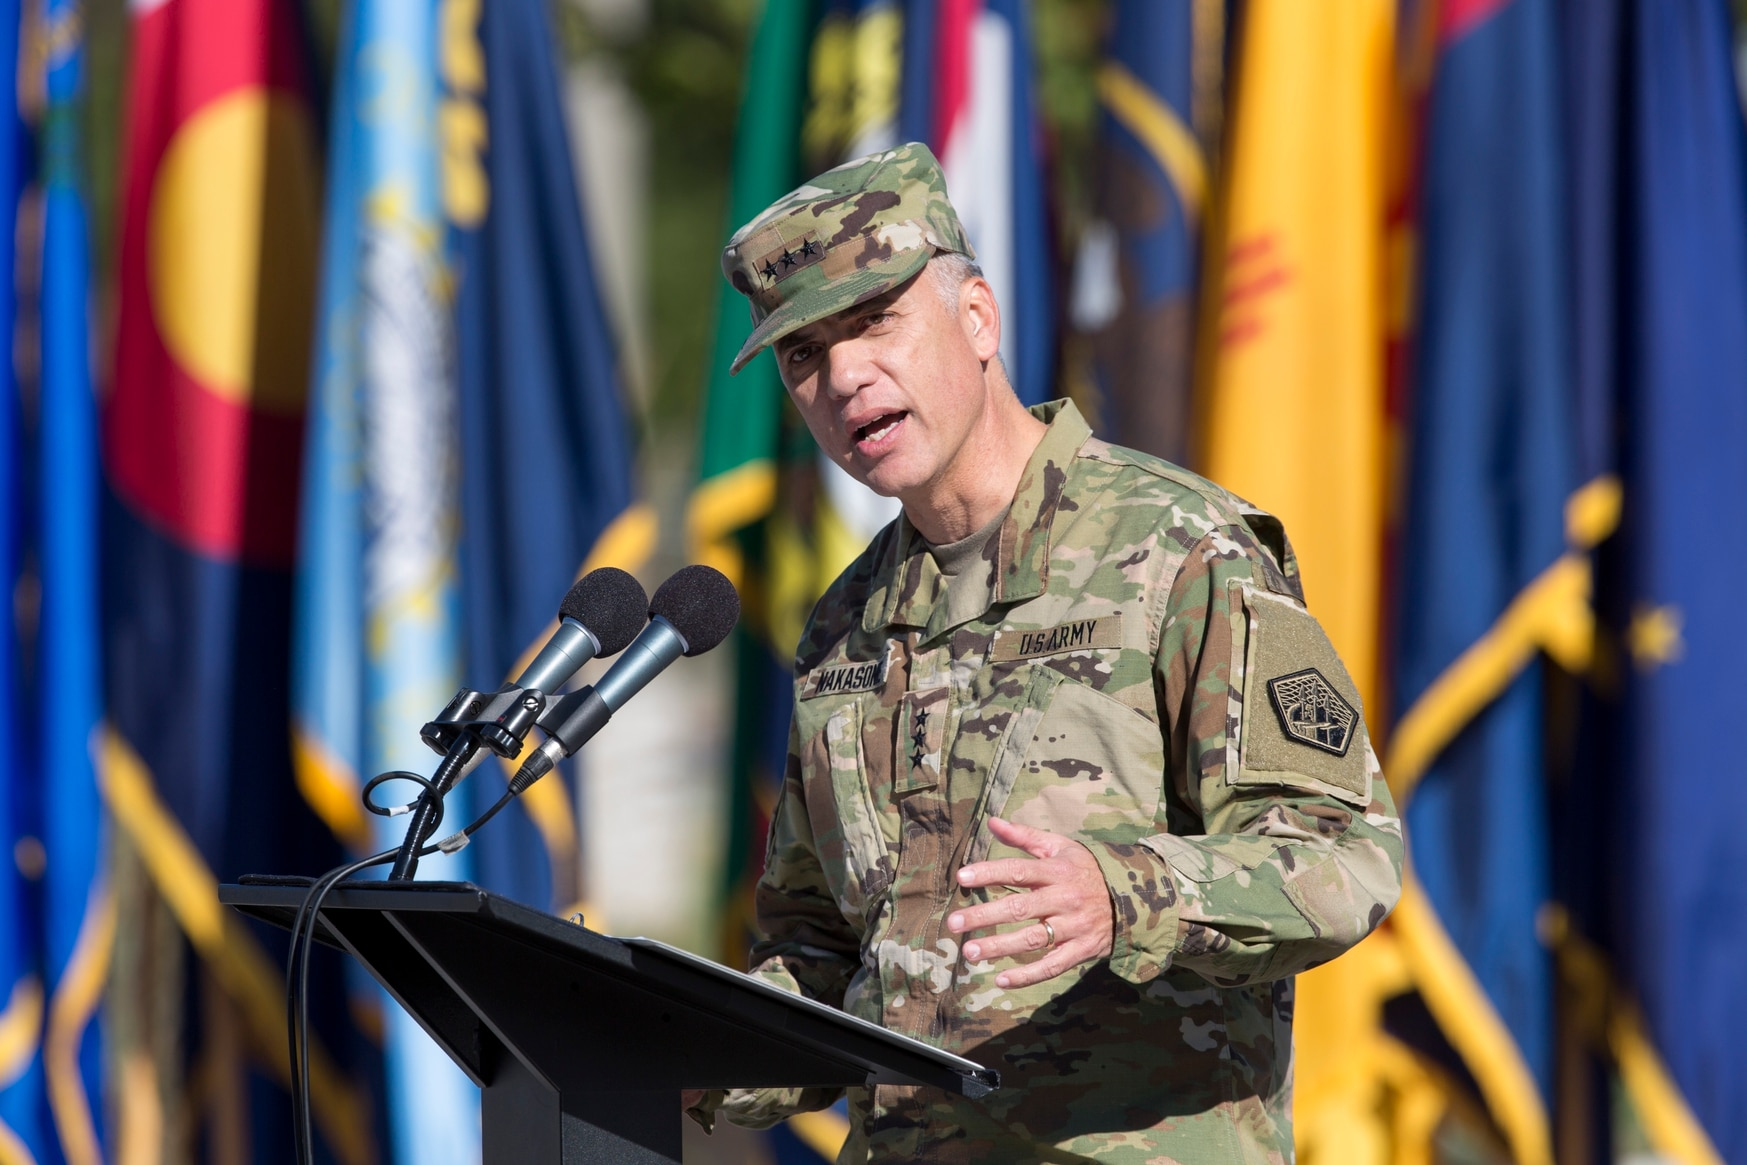 Lt. Gen. Paul Nakasone is now in charge of U.S. cyber command and the NSA. (Alan Lessig/Staff)